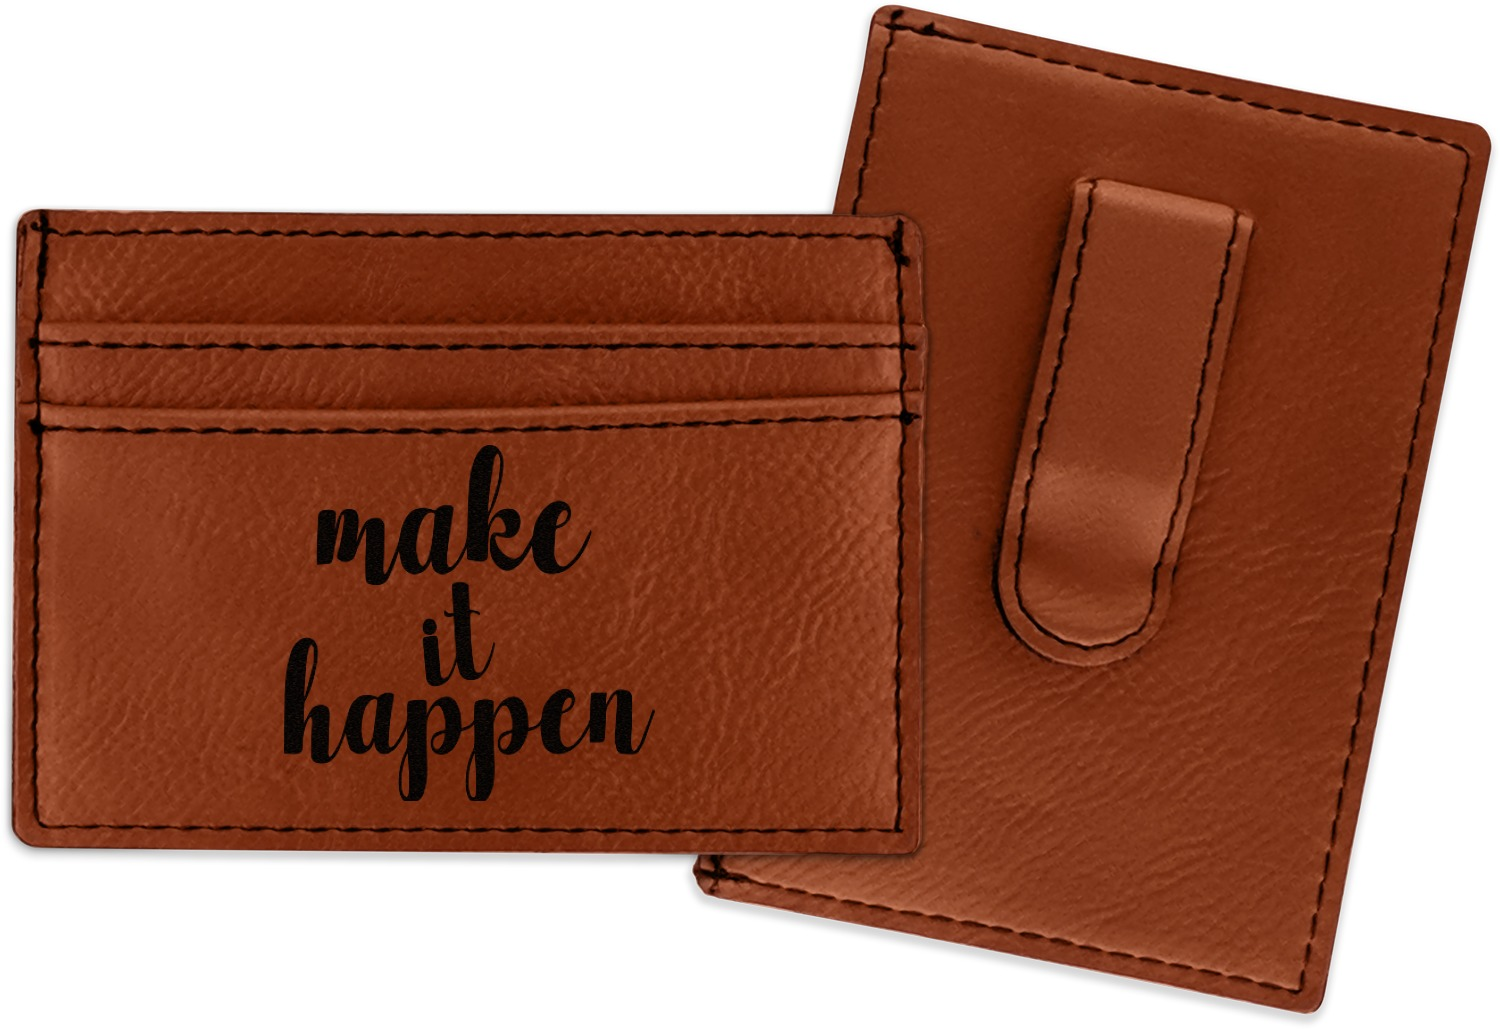 Inspirational Quotes And Sayings Leatherette Wallet With Money Clip